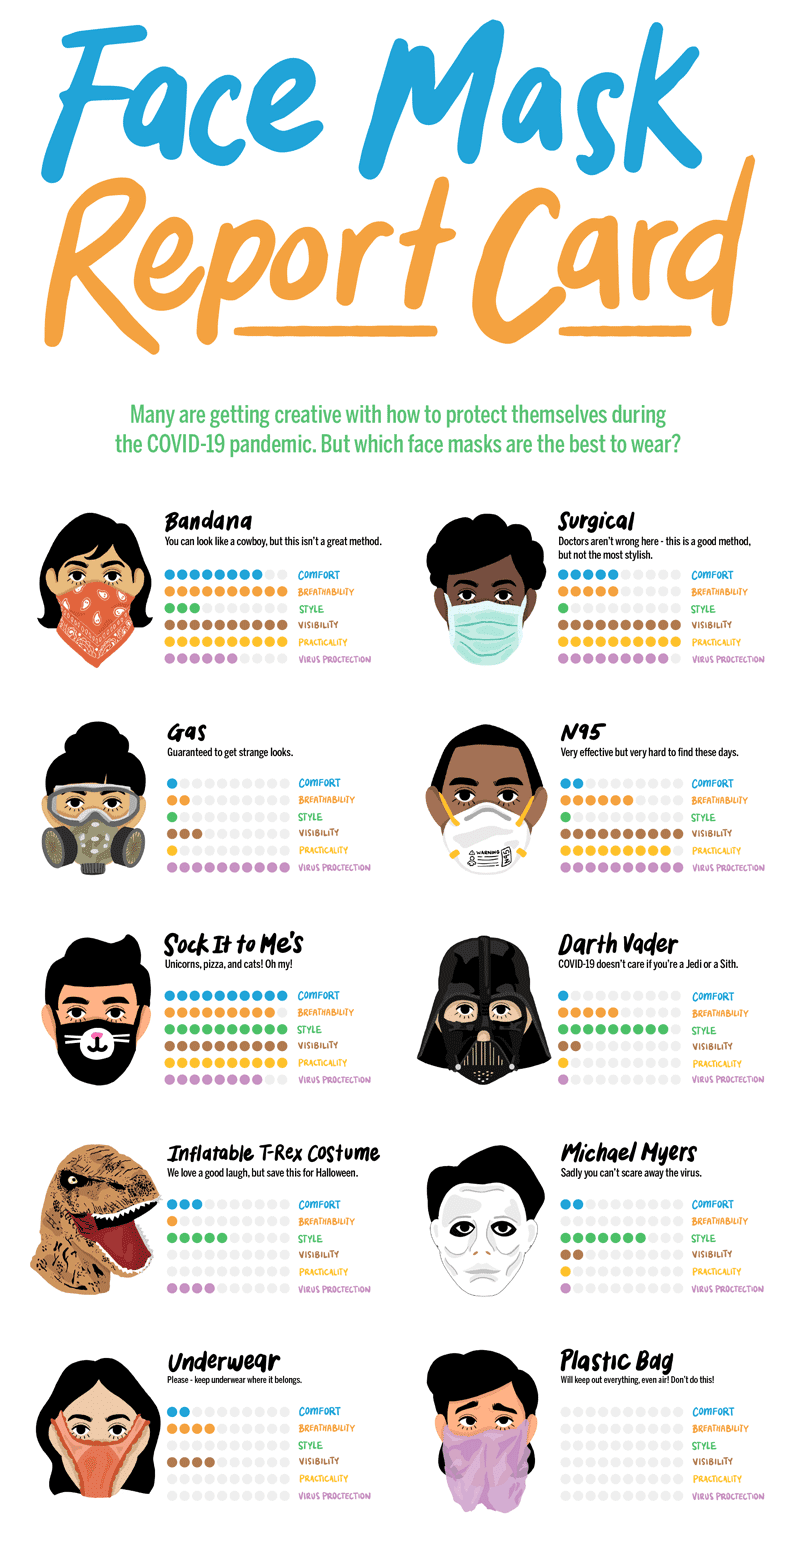 Face Mask Report Card #infographic#Report Card #Health & Beauty #Face mask